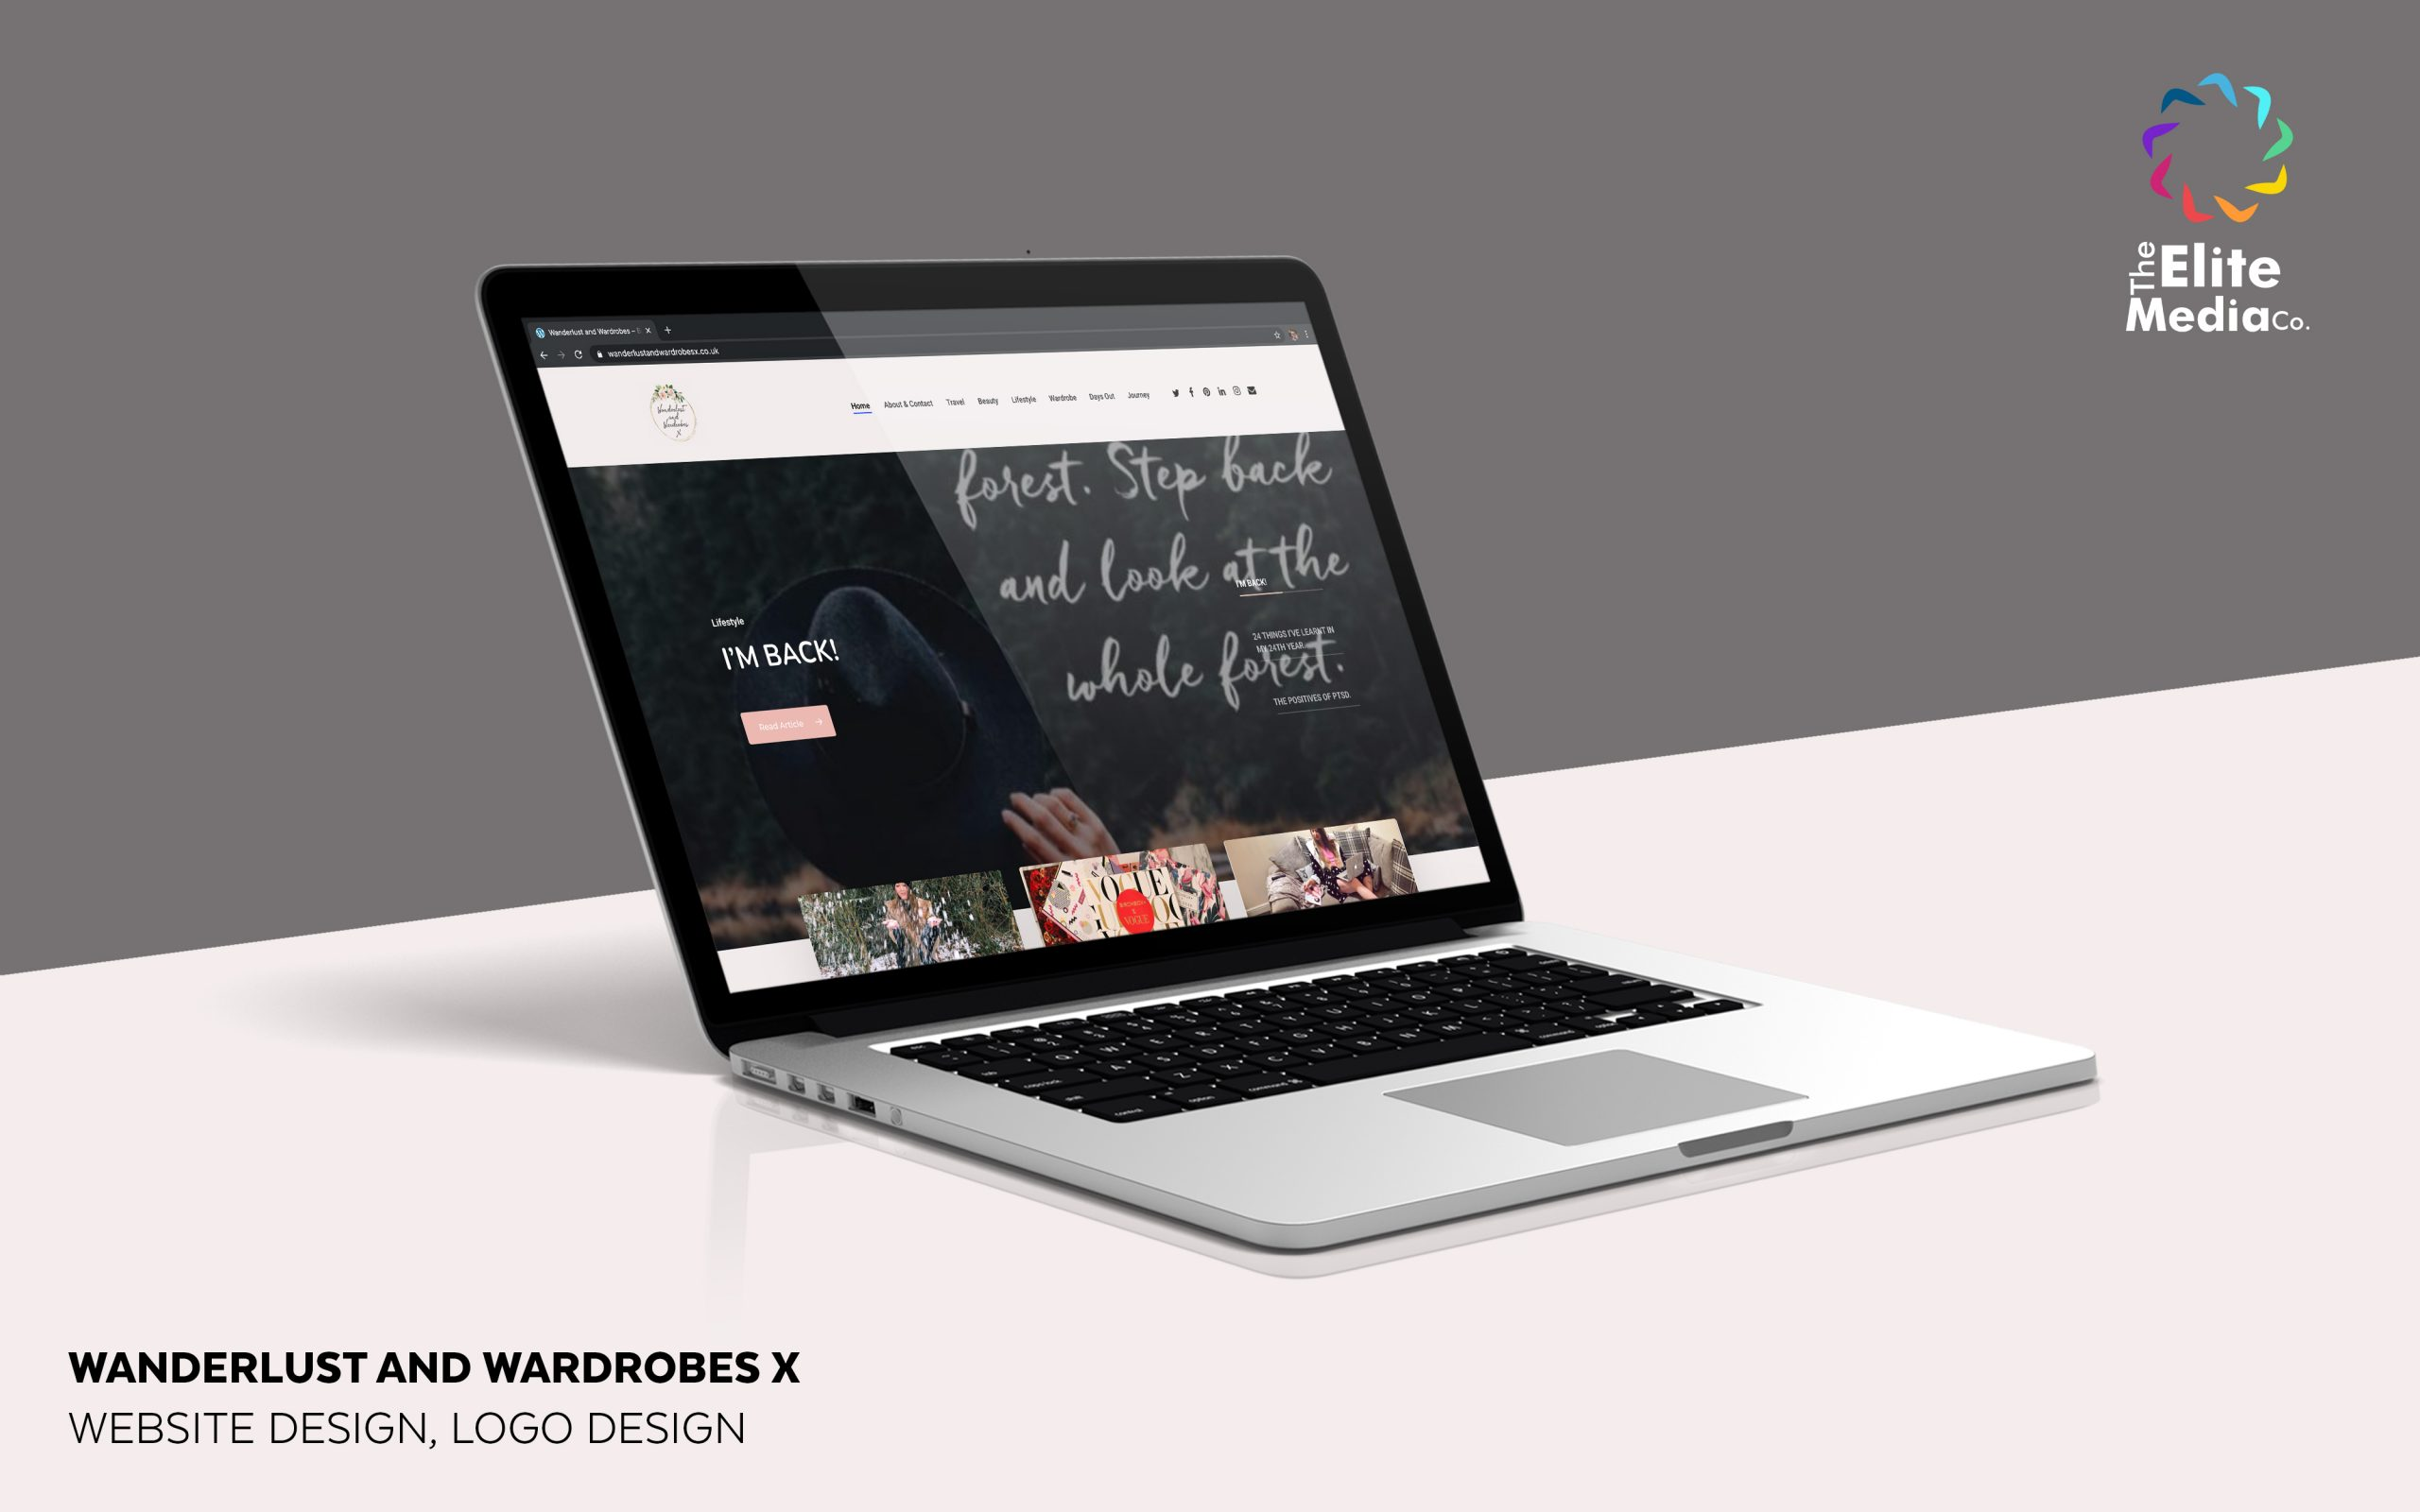 Wanderlust and Wardrobes X – Website